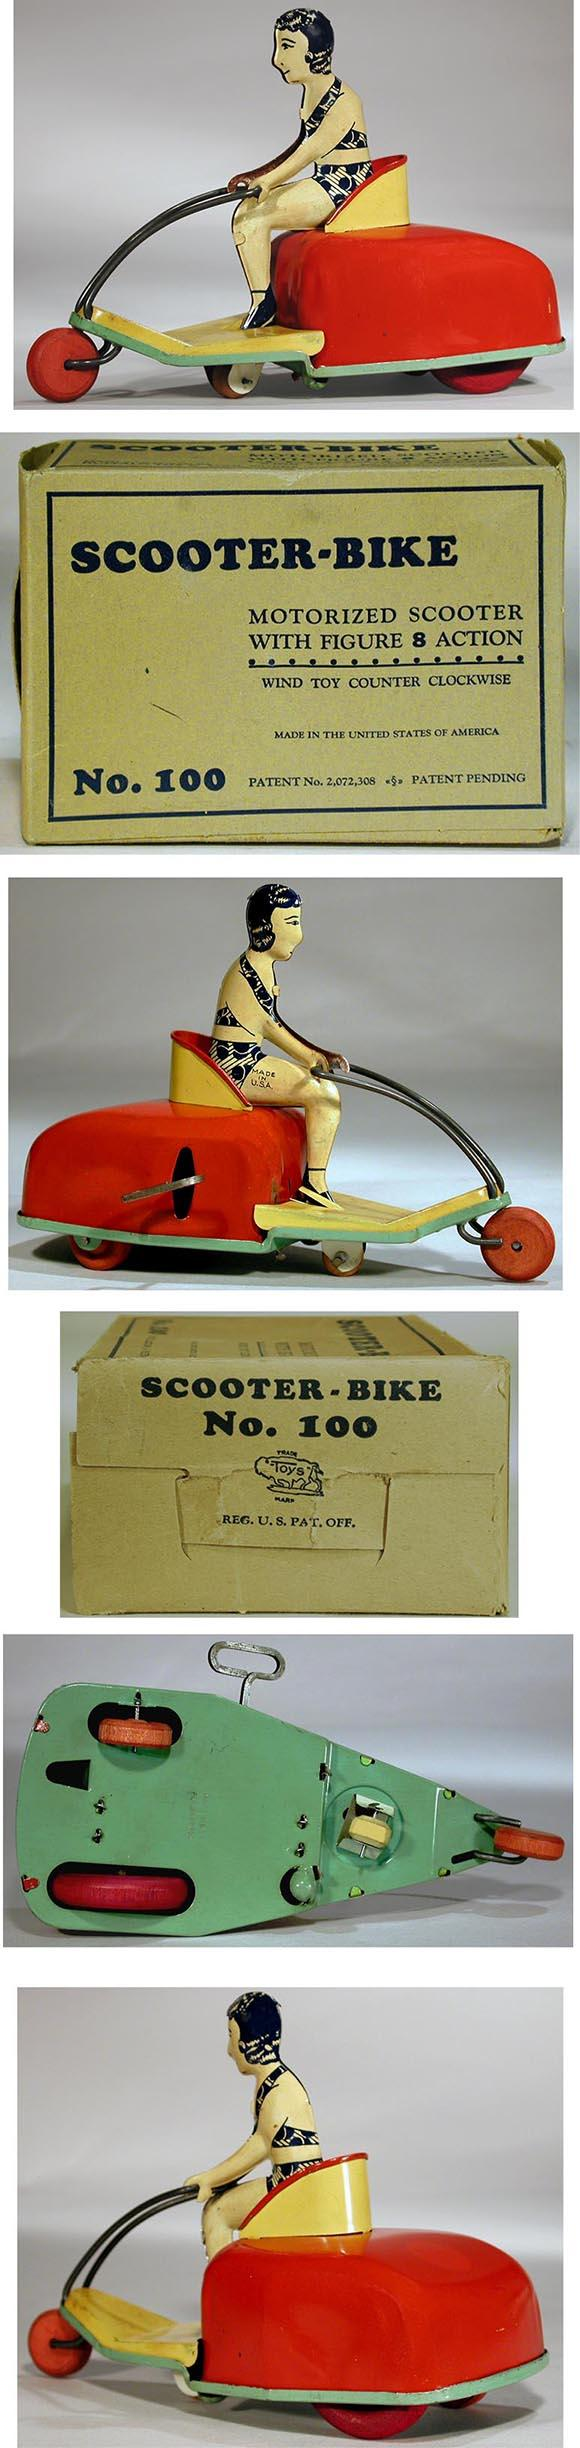 1937 Buffalo Toy & Tool Works, Scooter-Bike (Bathing Beauty) in Original Box